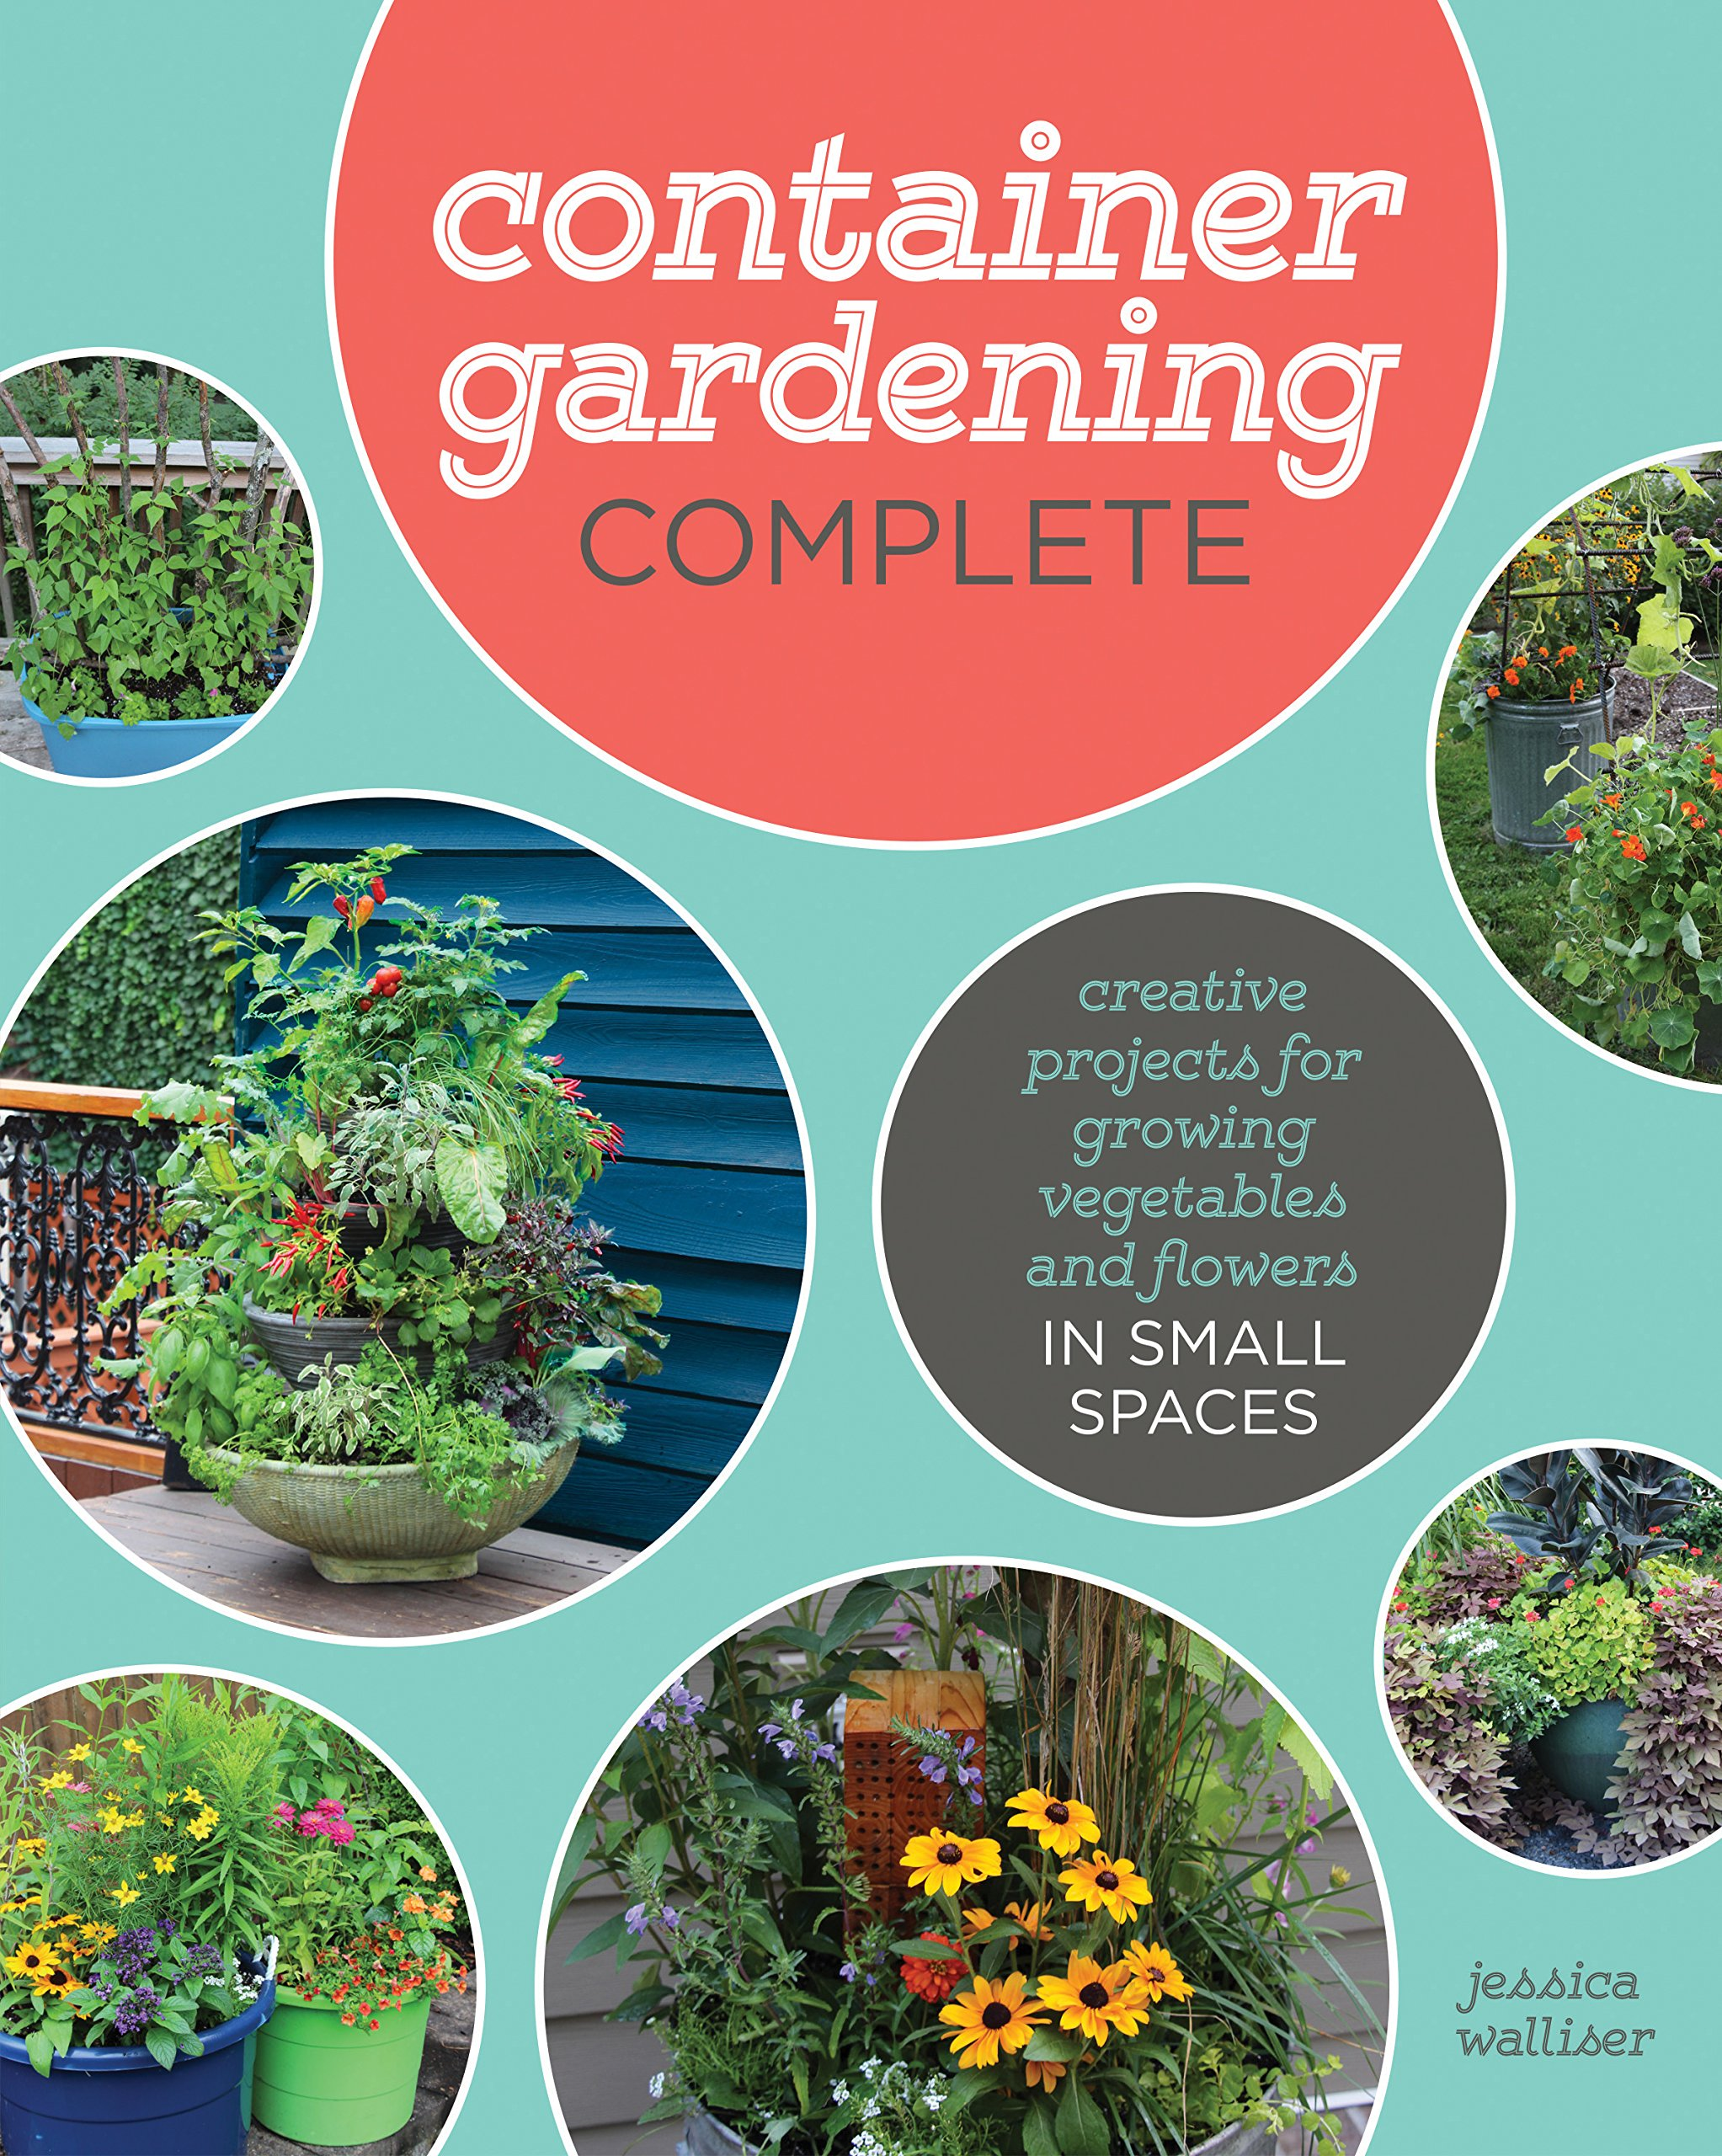 Buy Container Gardening Complete Creative Projects For Growing Vegetables And Flowers In Small Spaces Book Online At Low Prices In India Container Gardening Complete Creative Projects For Growing Vegetables And Flowers